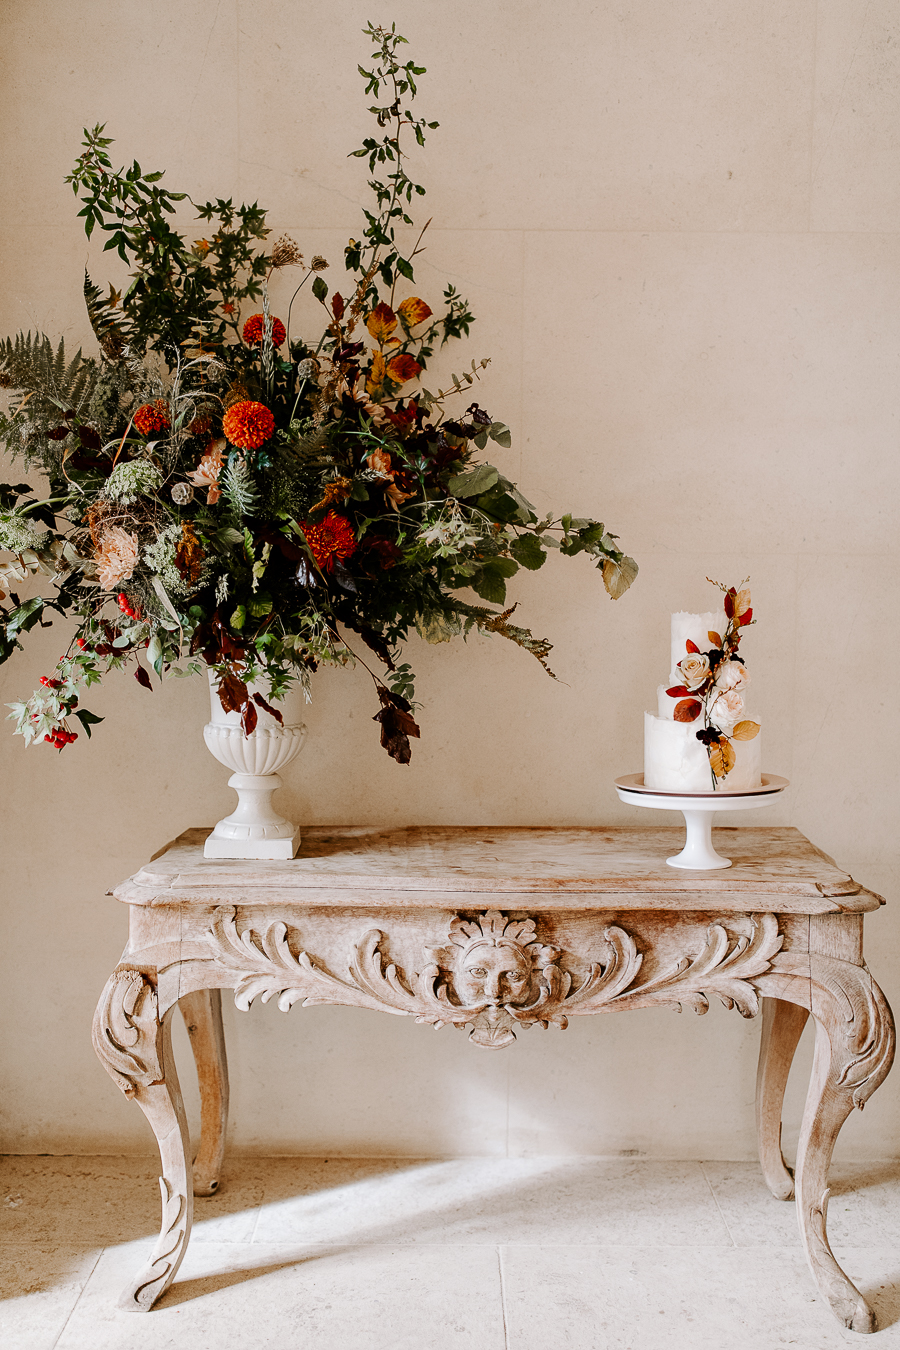 A magical wiltshire wedding venue - the Lost Orangery with Sam Cook Photography (9)